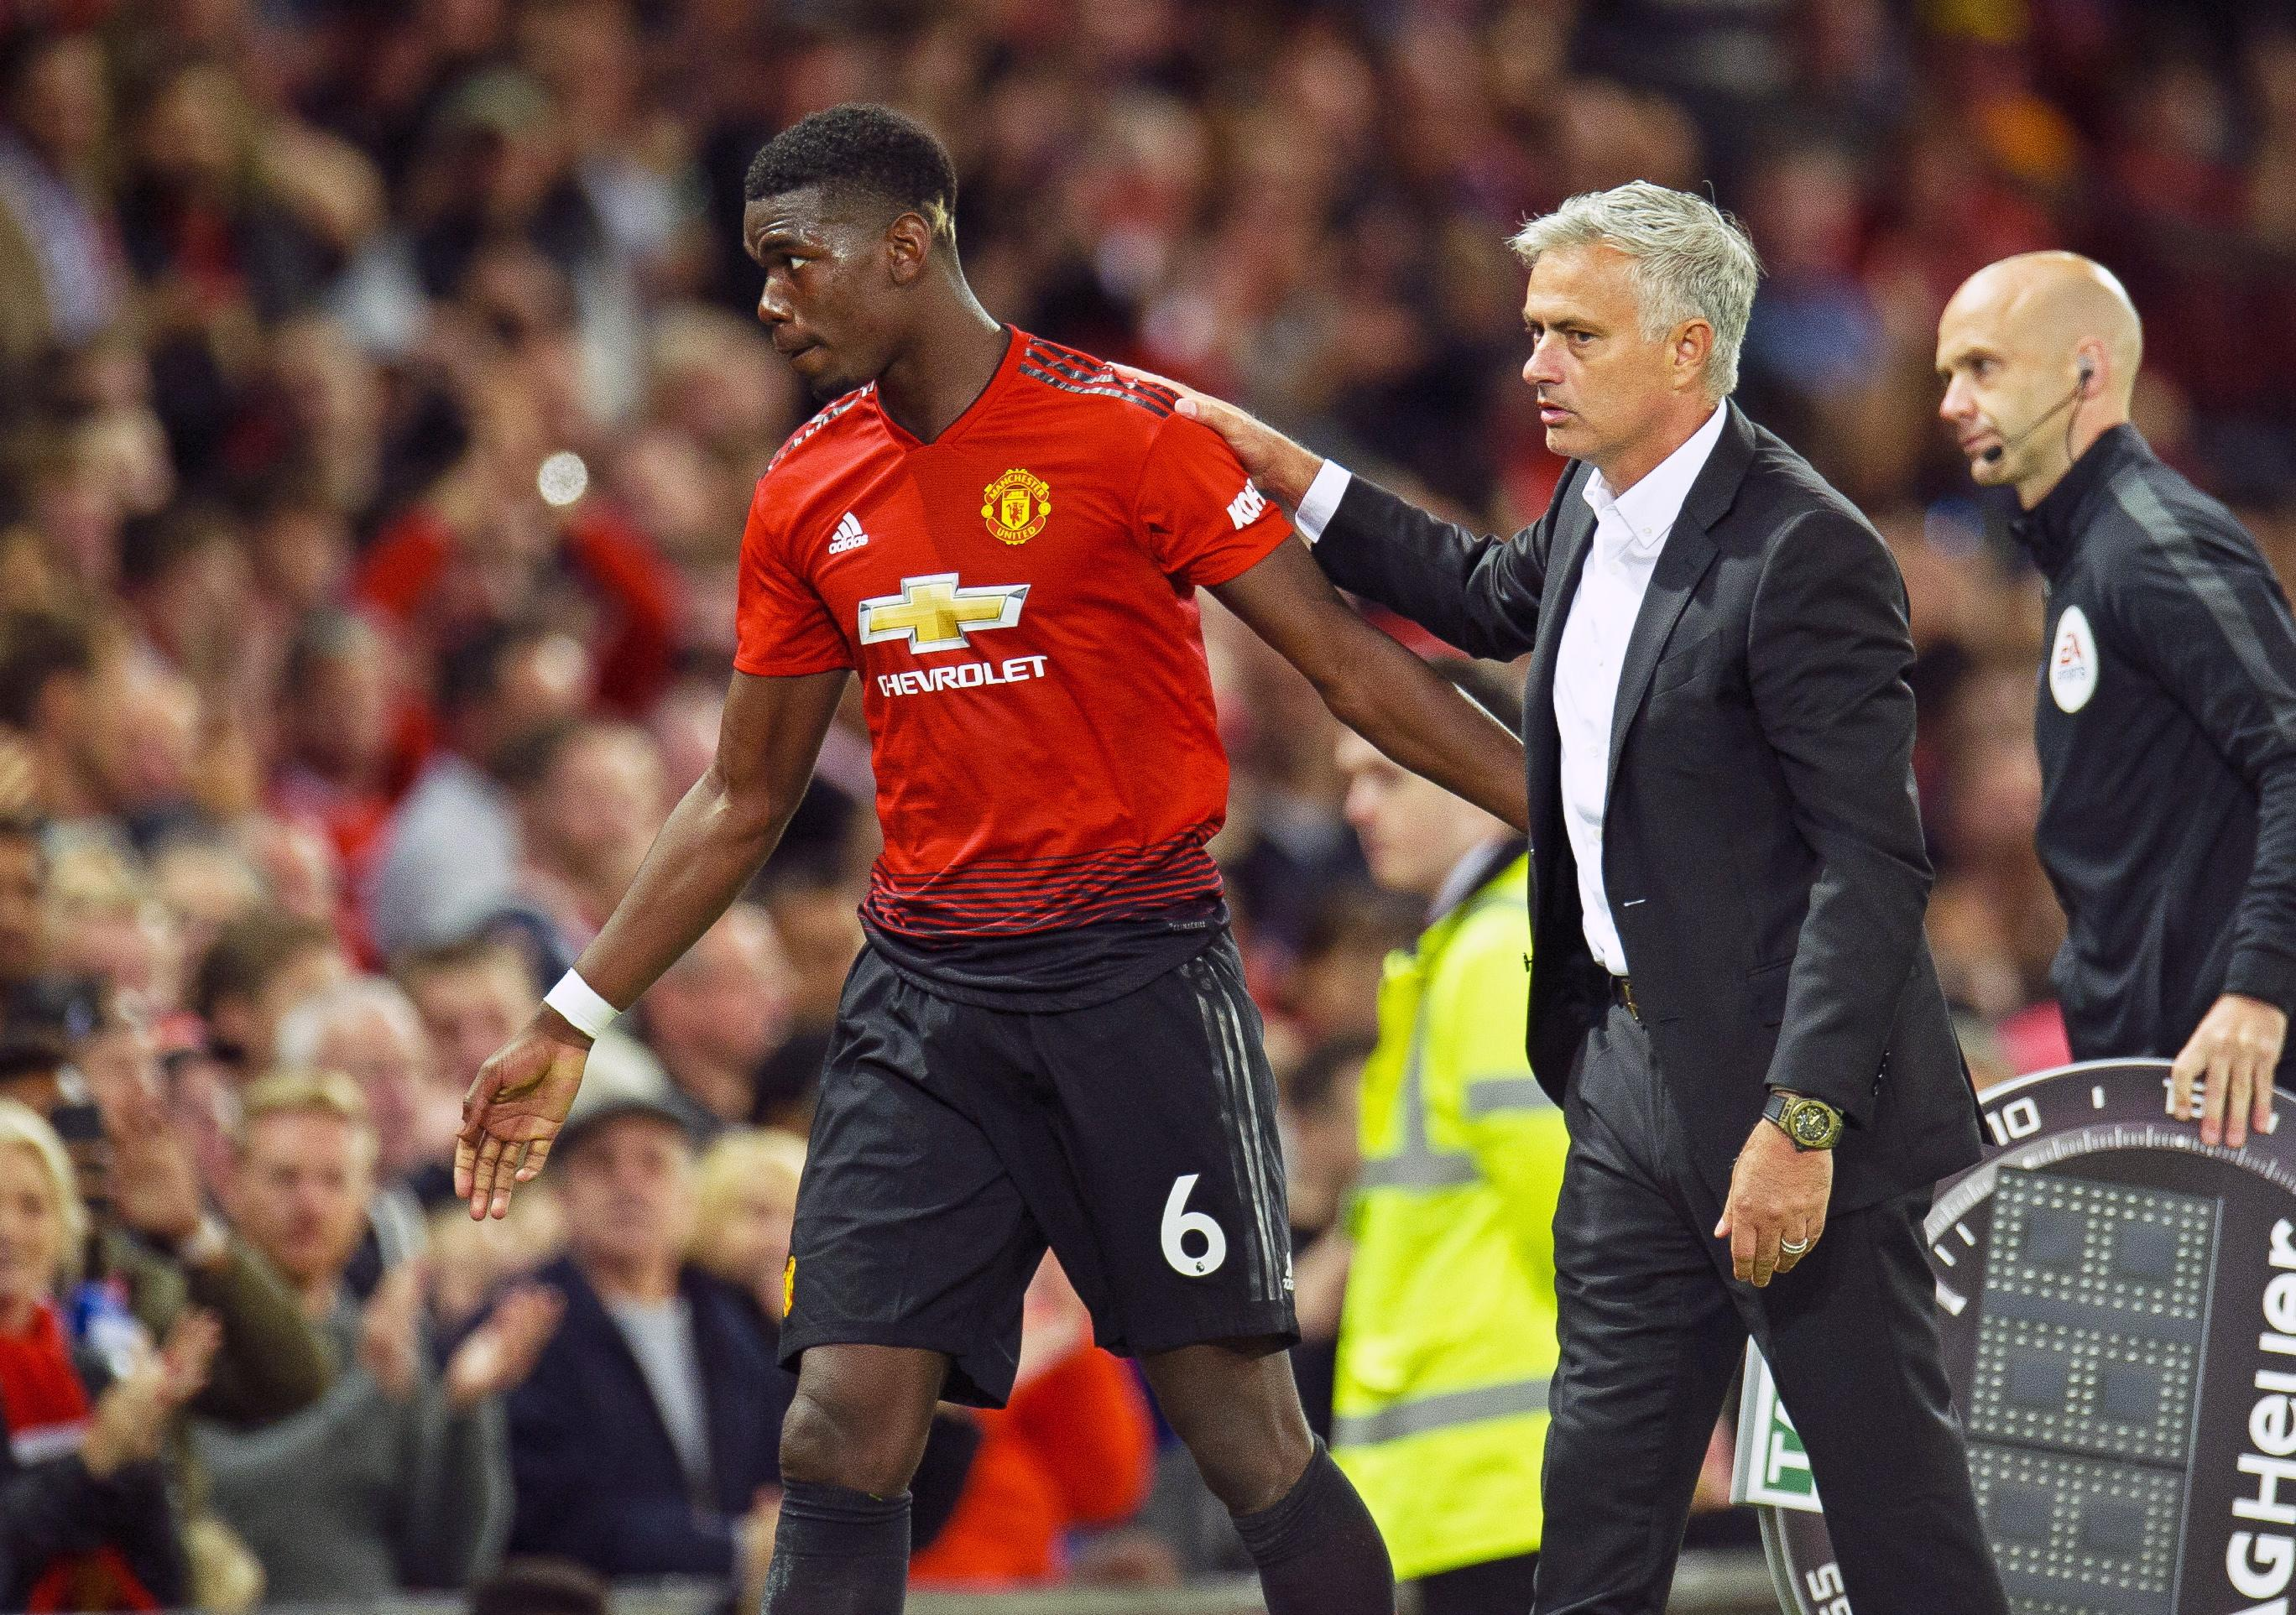 Jose Mourinho told reporters to quiz Paul Pogba on his comments about having the wrong attitude